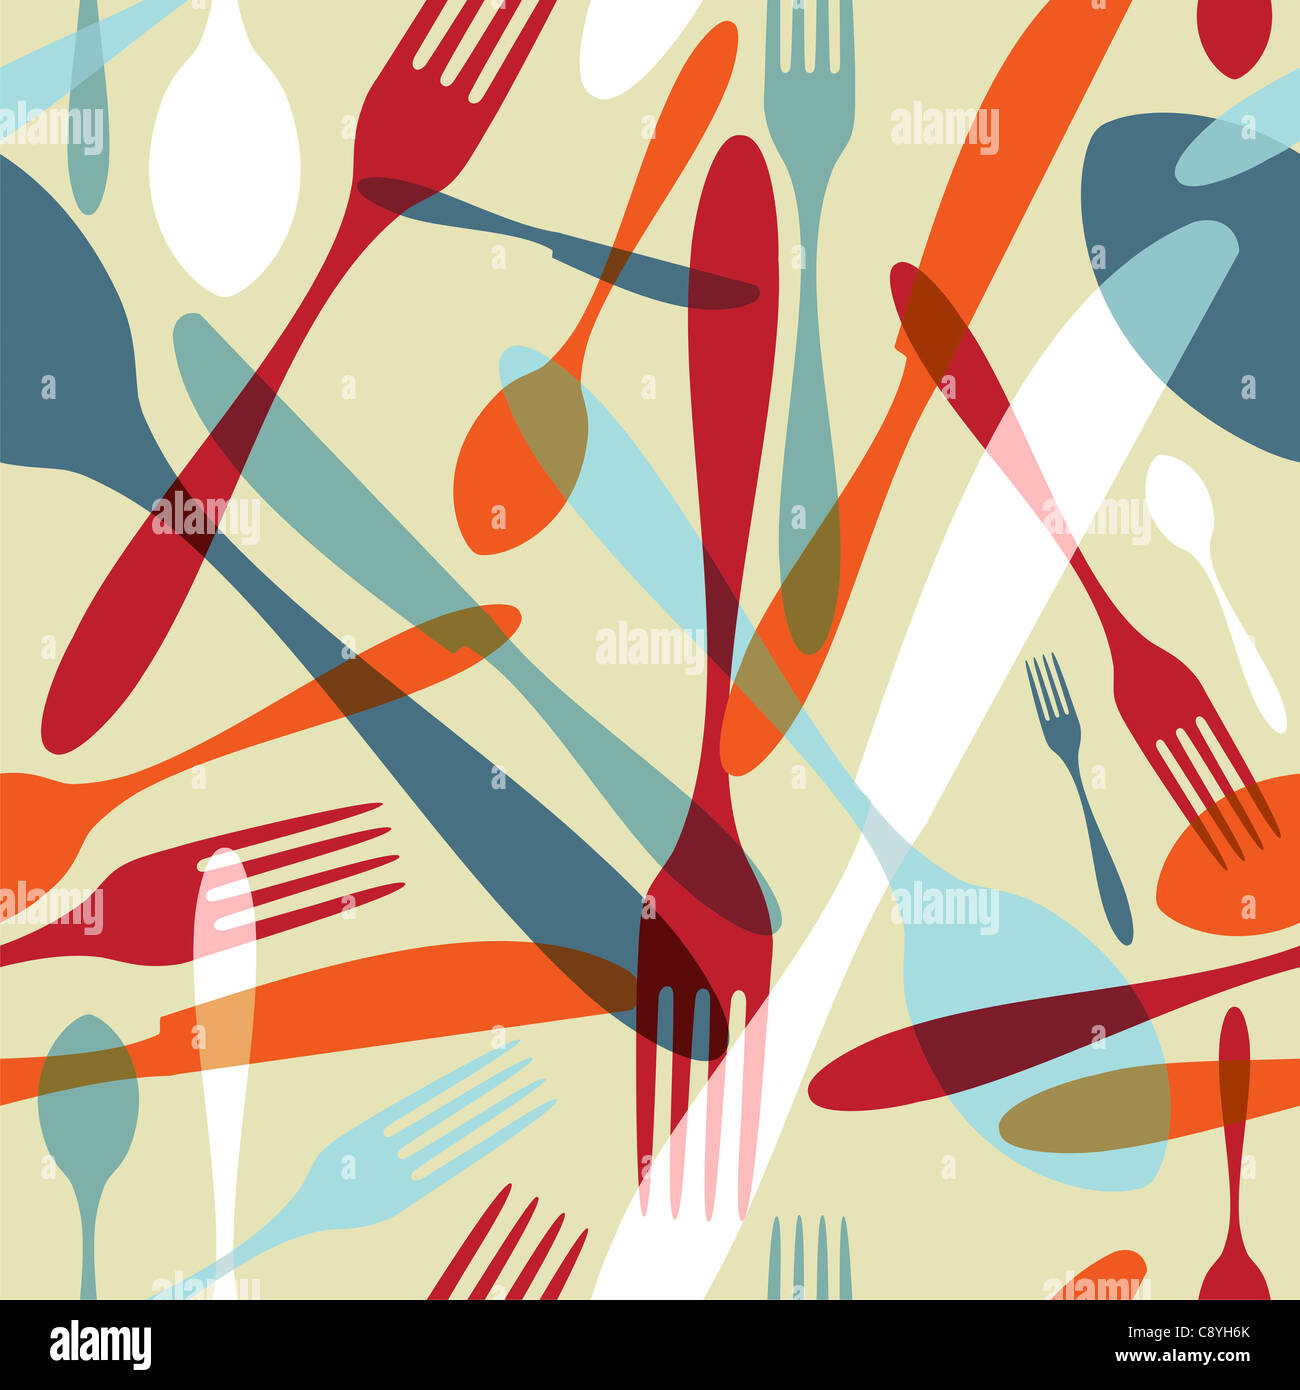 Transparency silverware icons seamless pattern background. Fork, knife and spoon silhouettes on different sizes - Stock Image